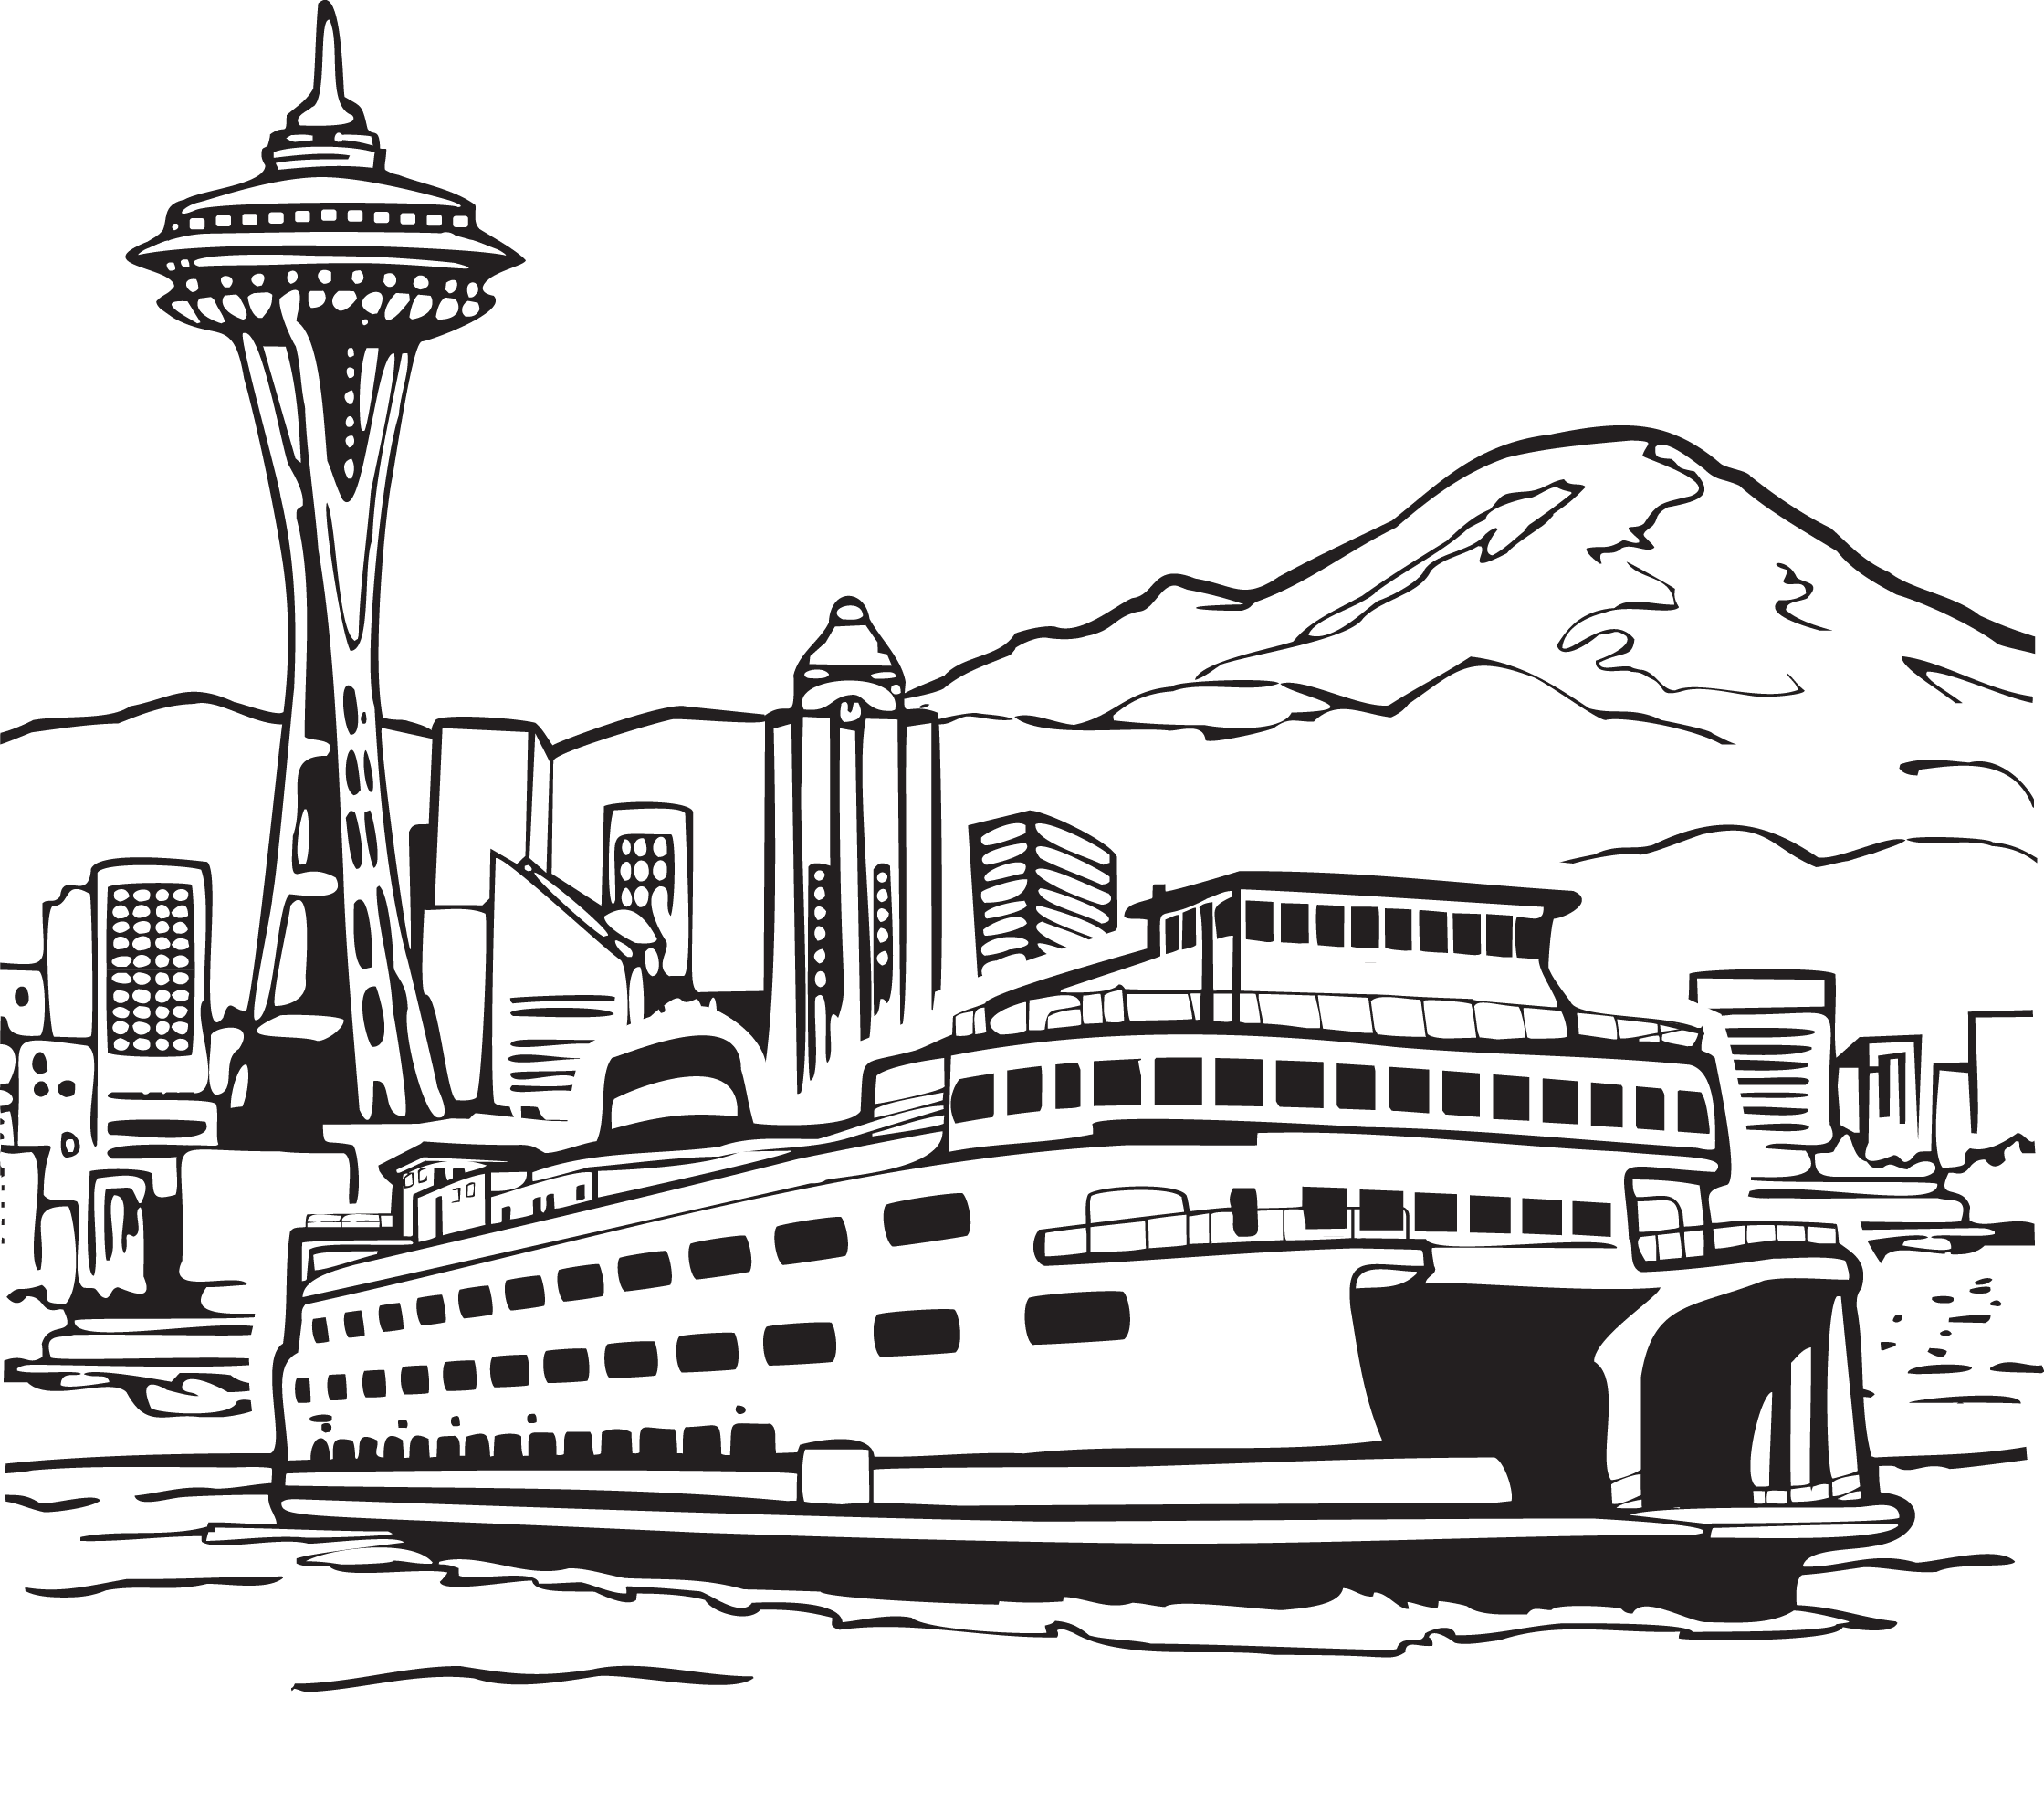 clip art black and white Yacht clipart ferry boat. Space needle smith tower